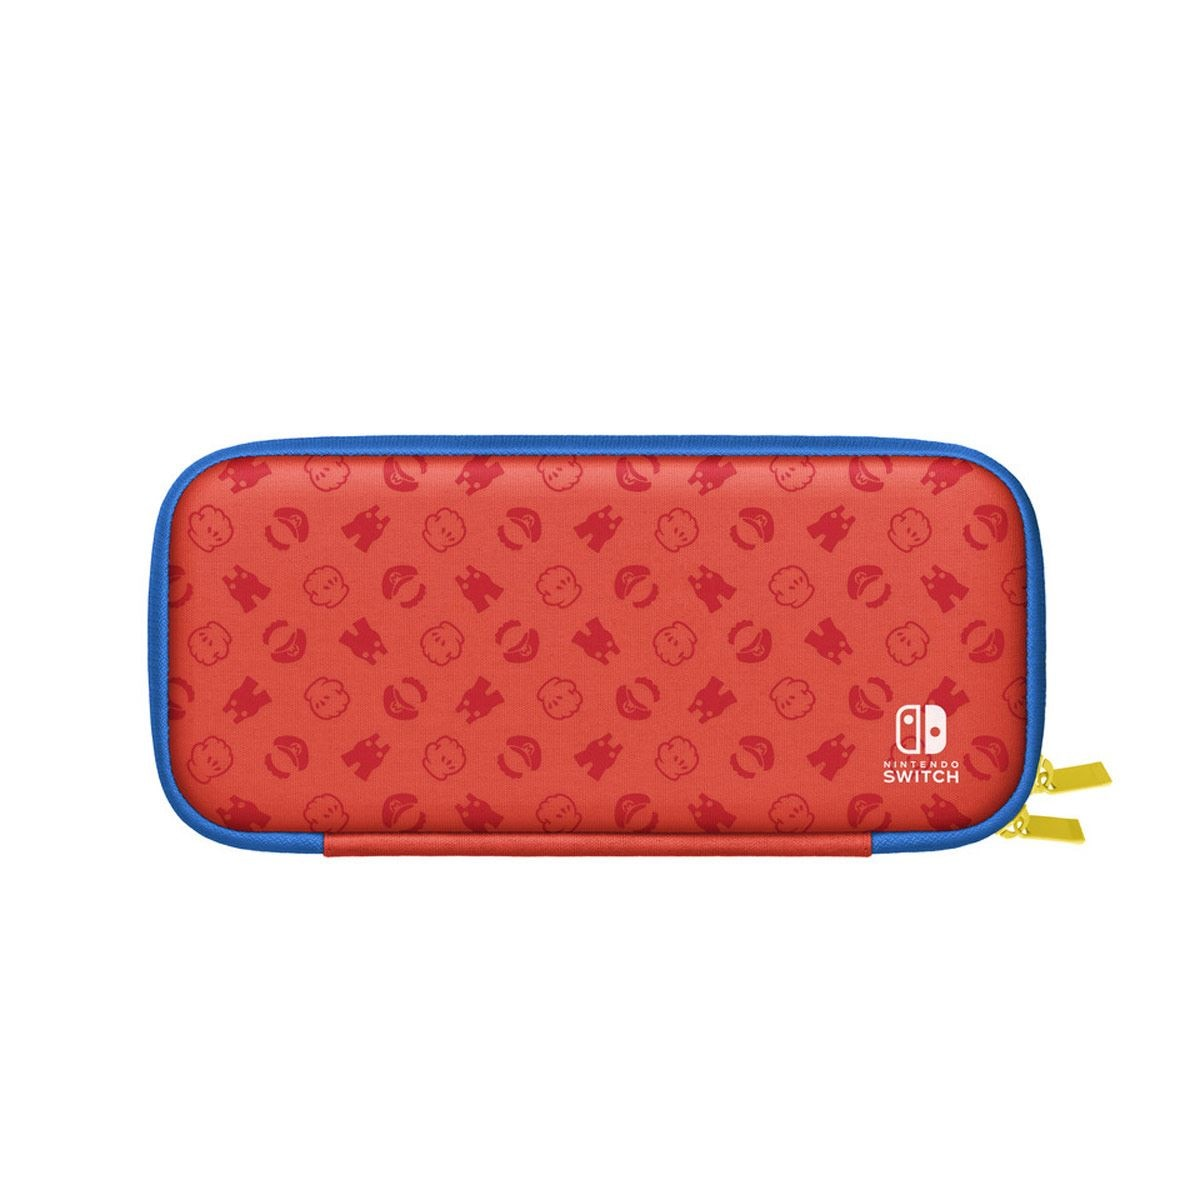 Consola NSW 1.1 Mario Red Blue Edition